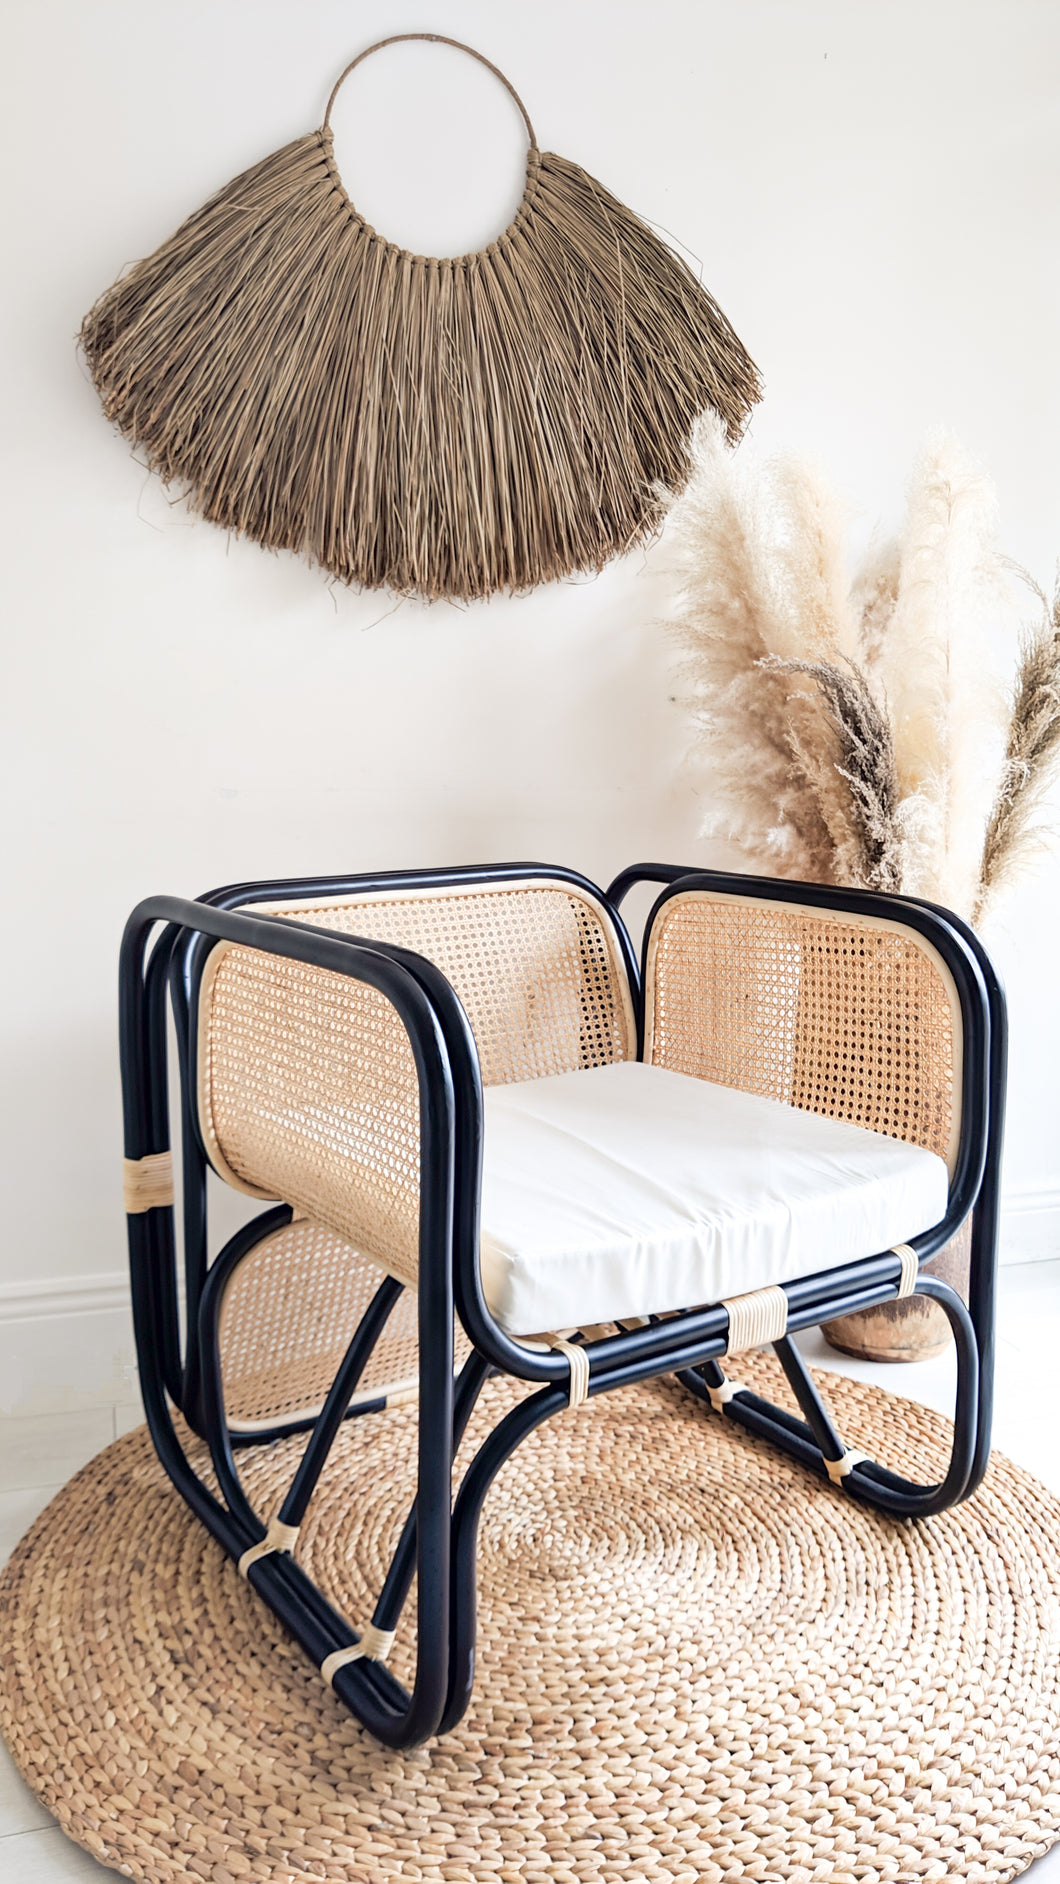 BLACK CANE AND RATTAN LOUNGER